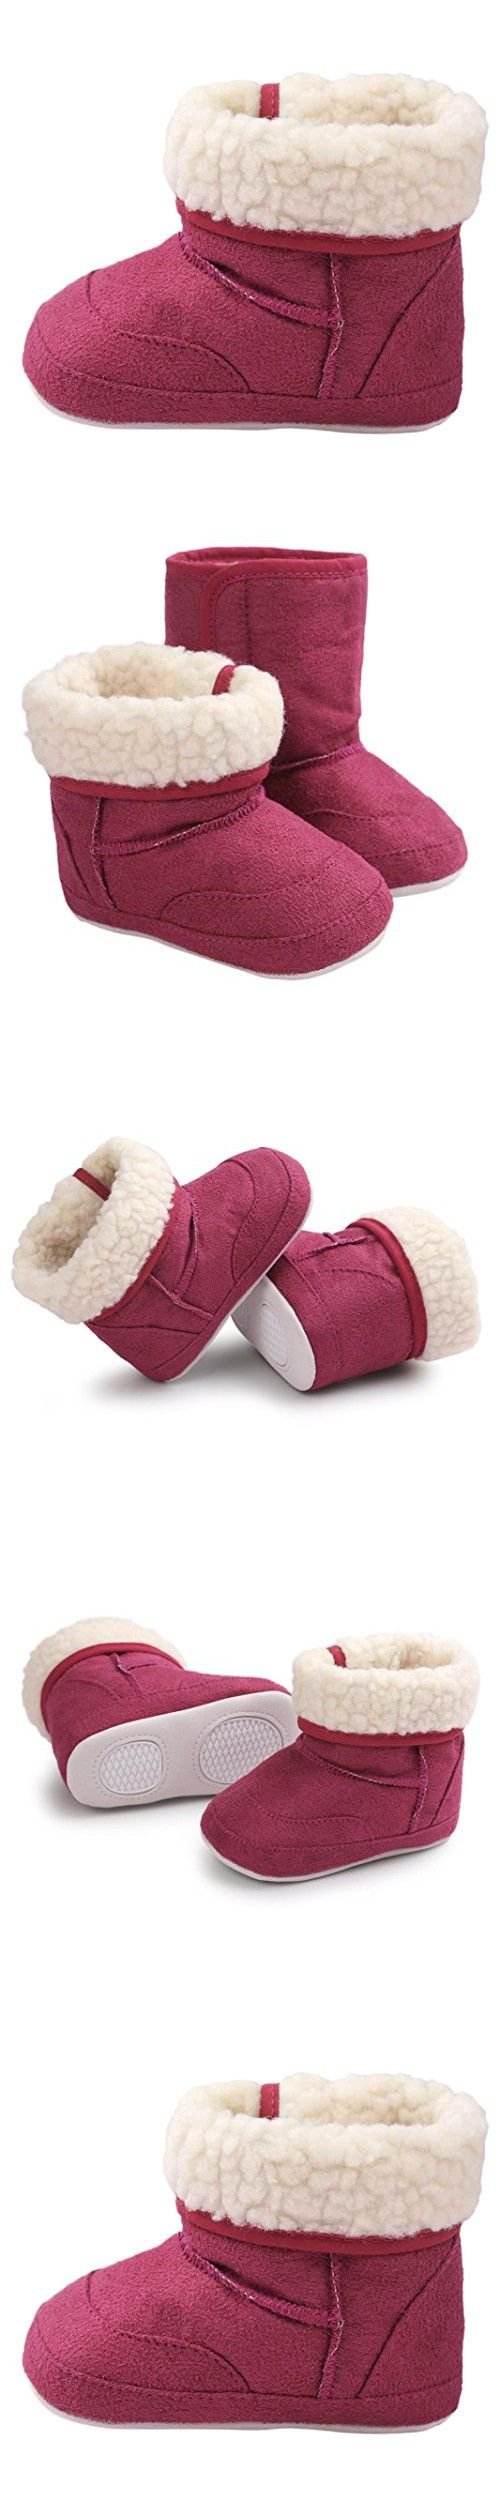 GBSELL New Casual Baby Toddler Winter Warm Sole Snow Boots Soft Crib Shoes (Purple, 12~18 Month)